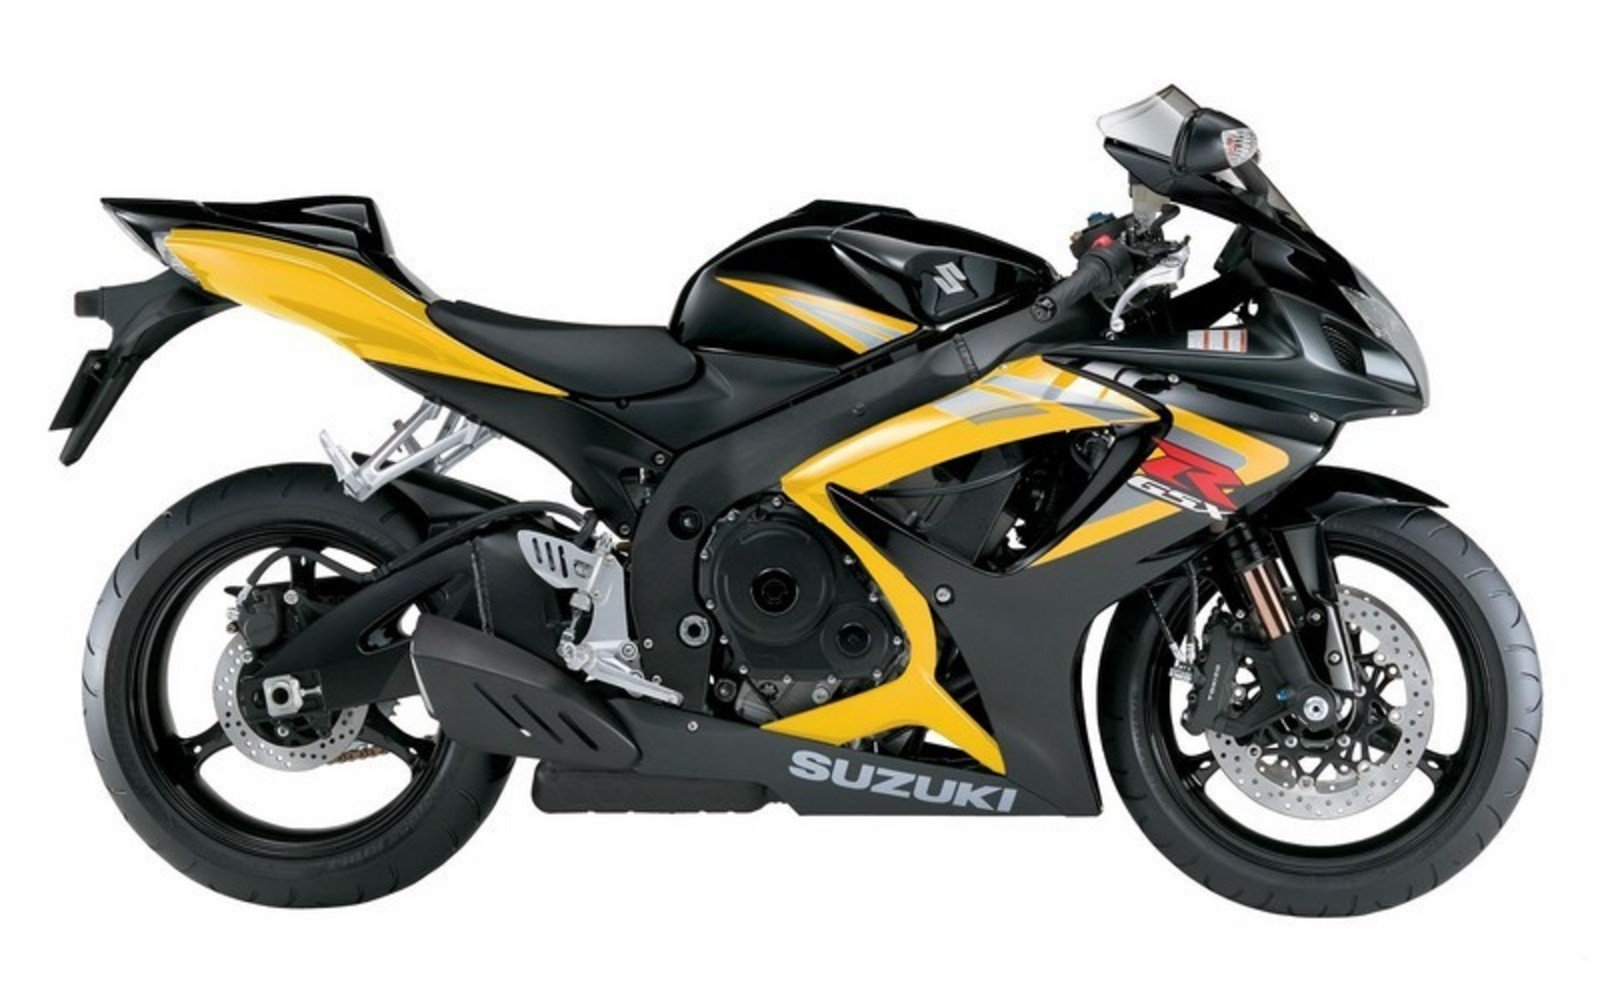 Suzuki GSXR 750 - Picture 84624 | motorcycle review @ Top ...